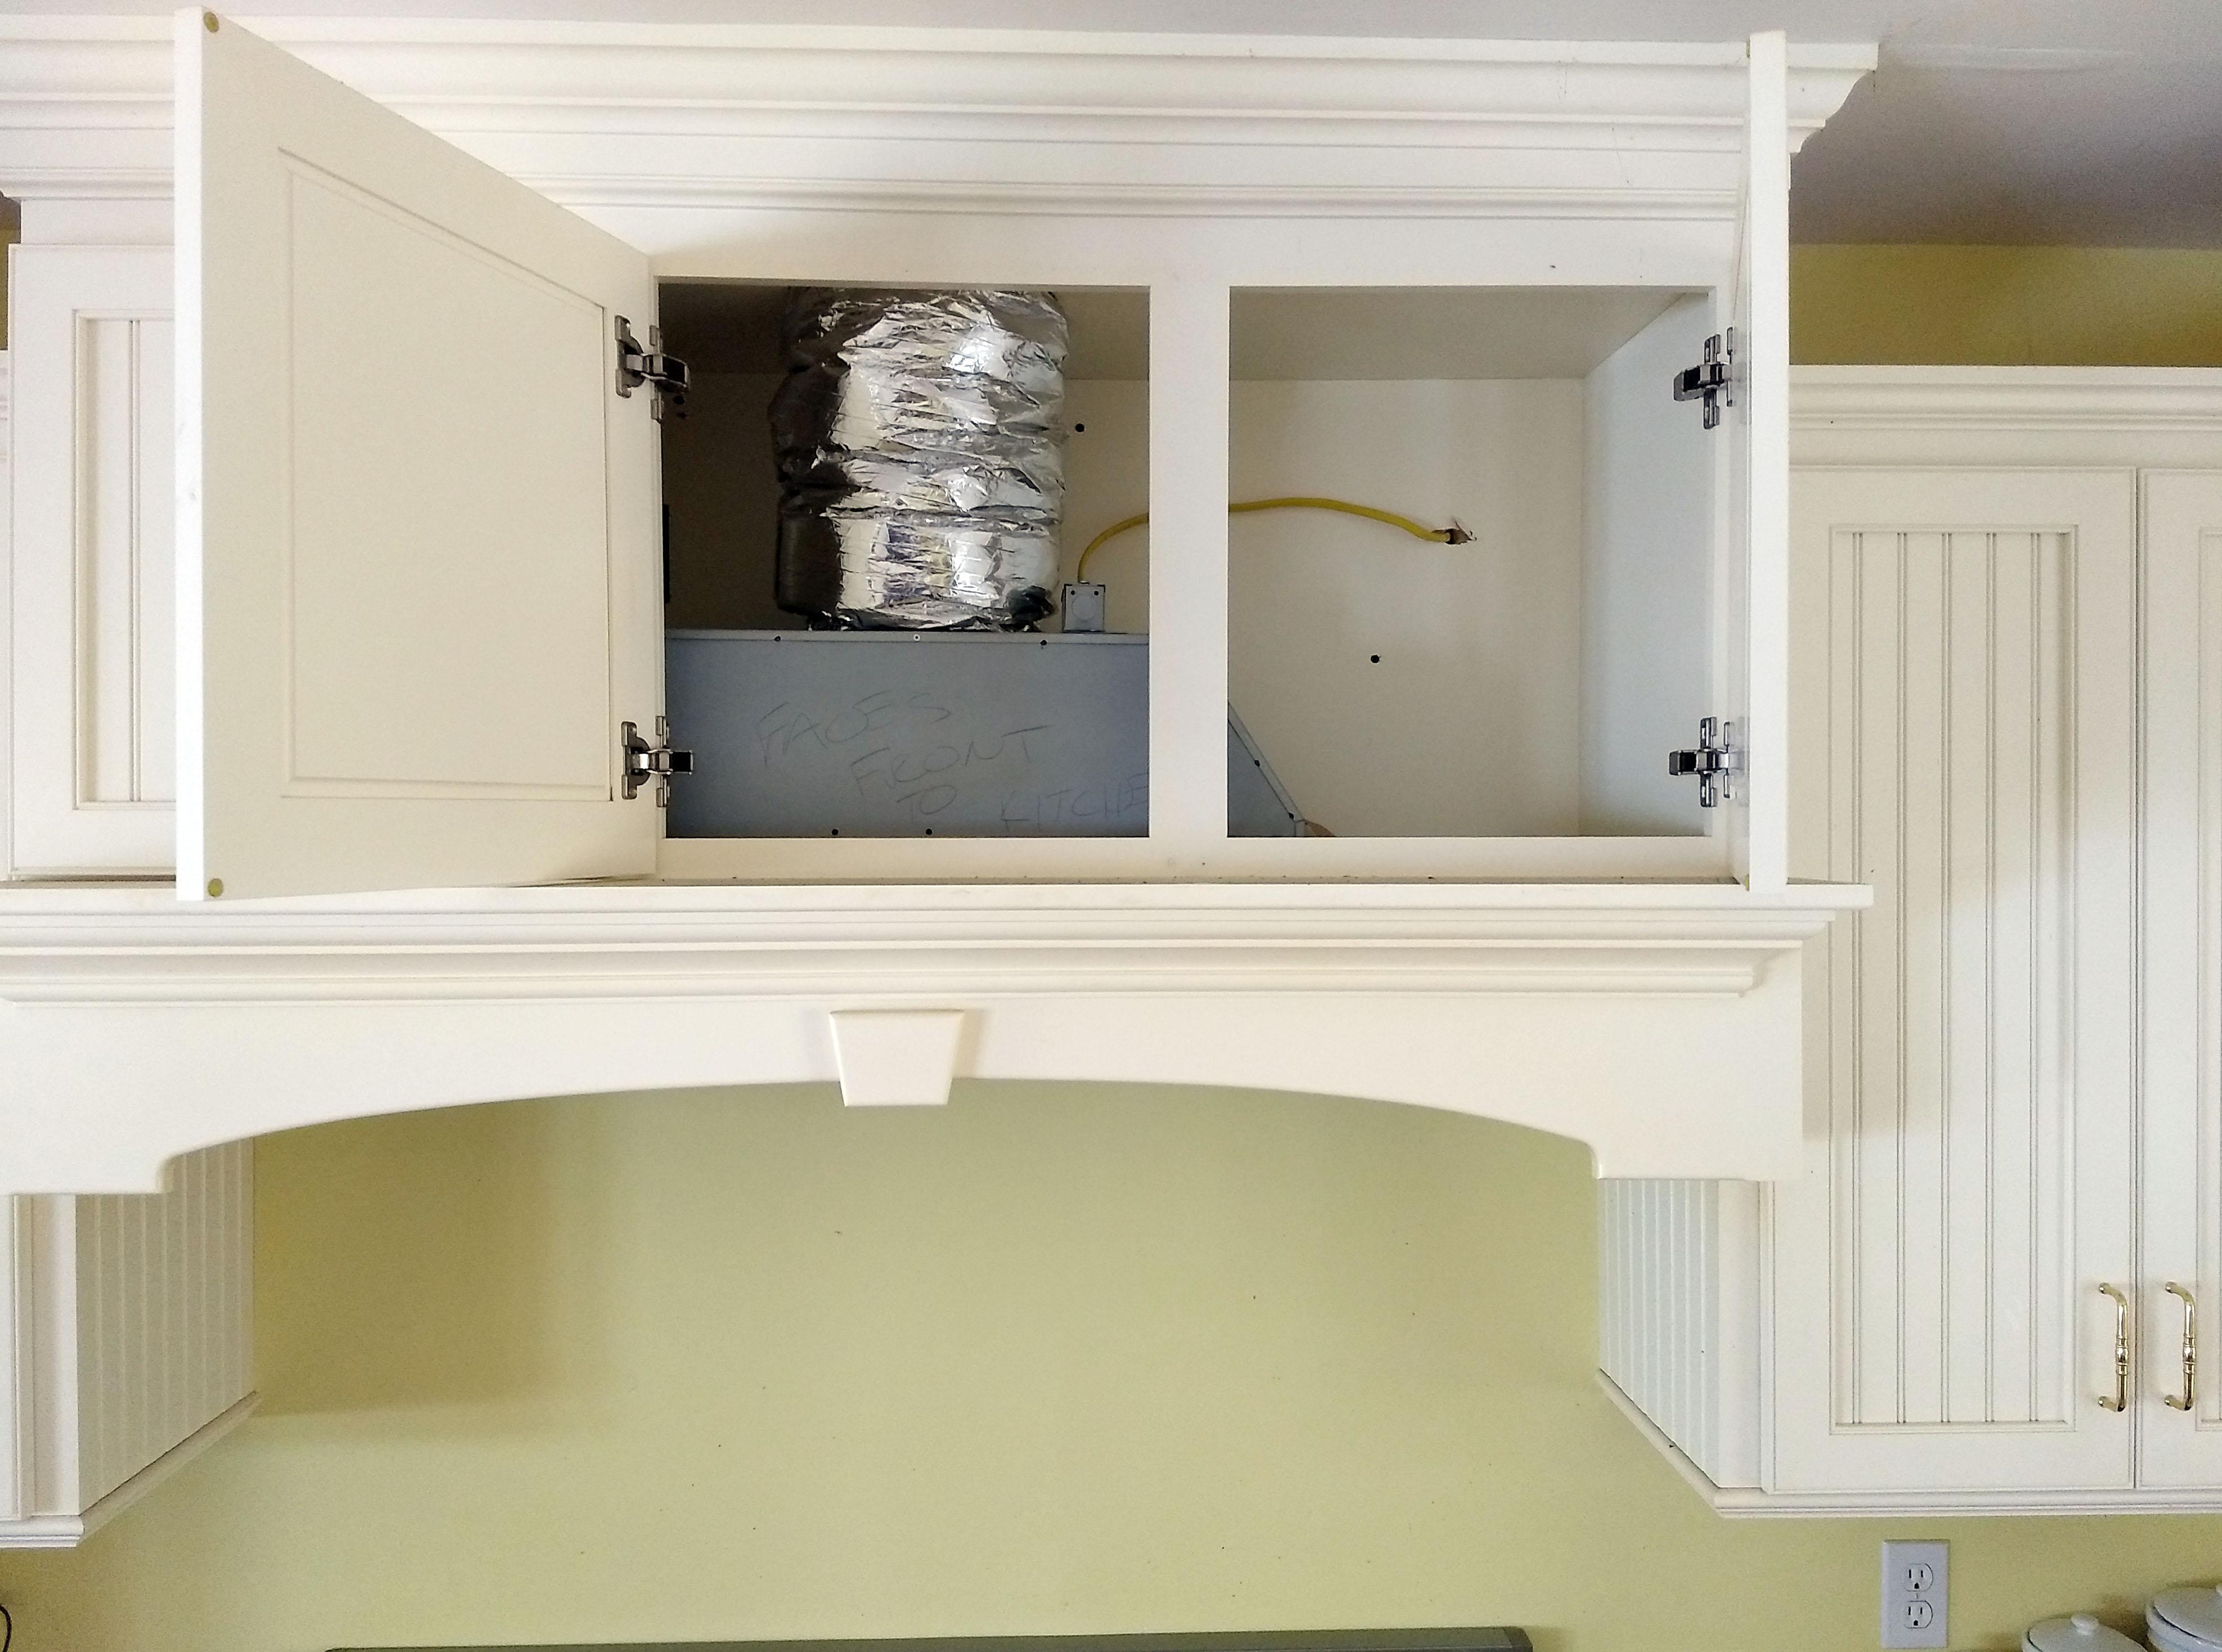 Ask The Builder When Installing Kitchen Exhaust Fan